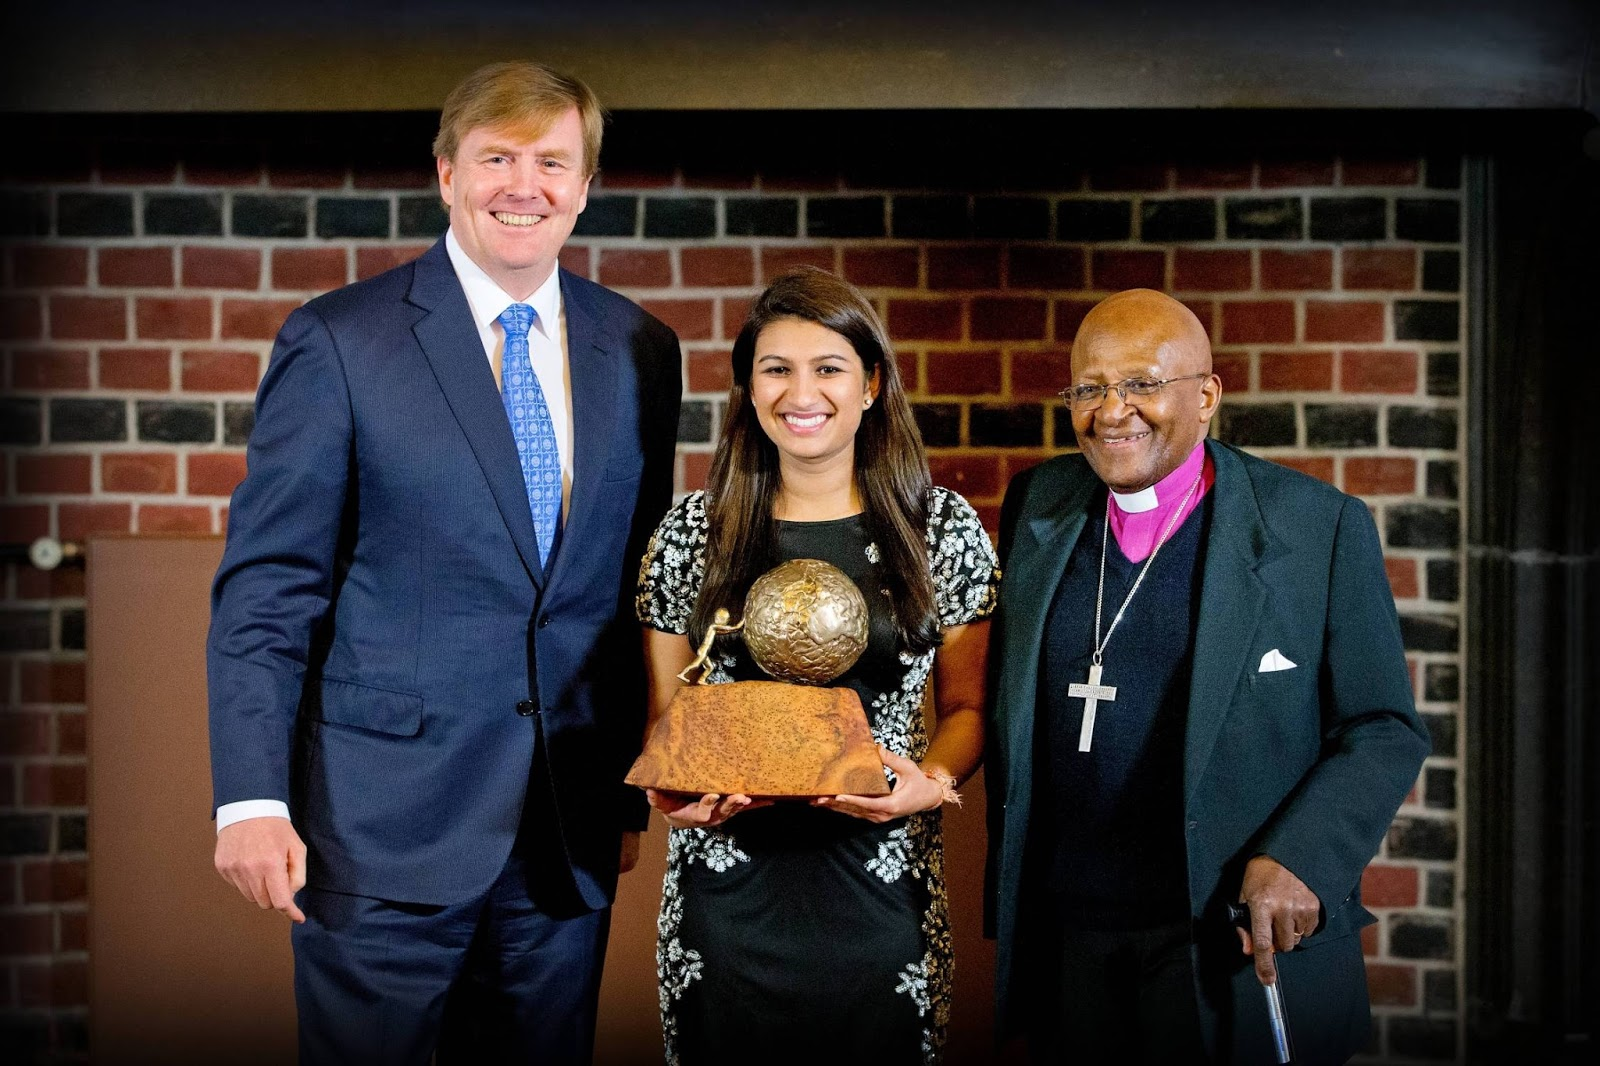 Dutch King Willem-Alexander and South African Archbishop Desmond Tutu pose with American Neha Gupta